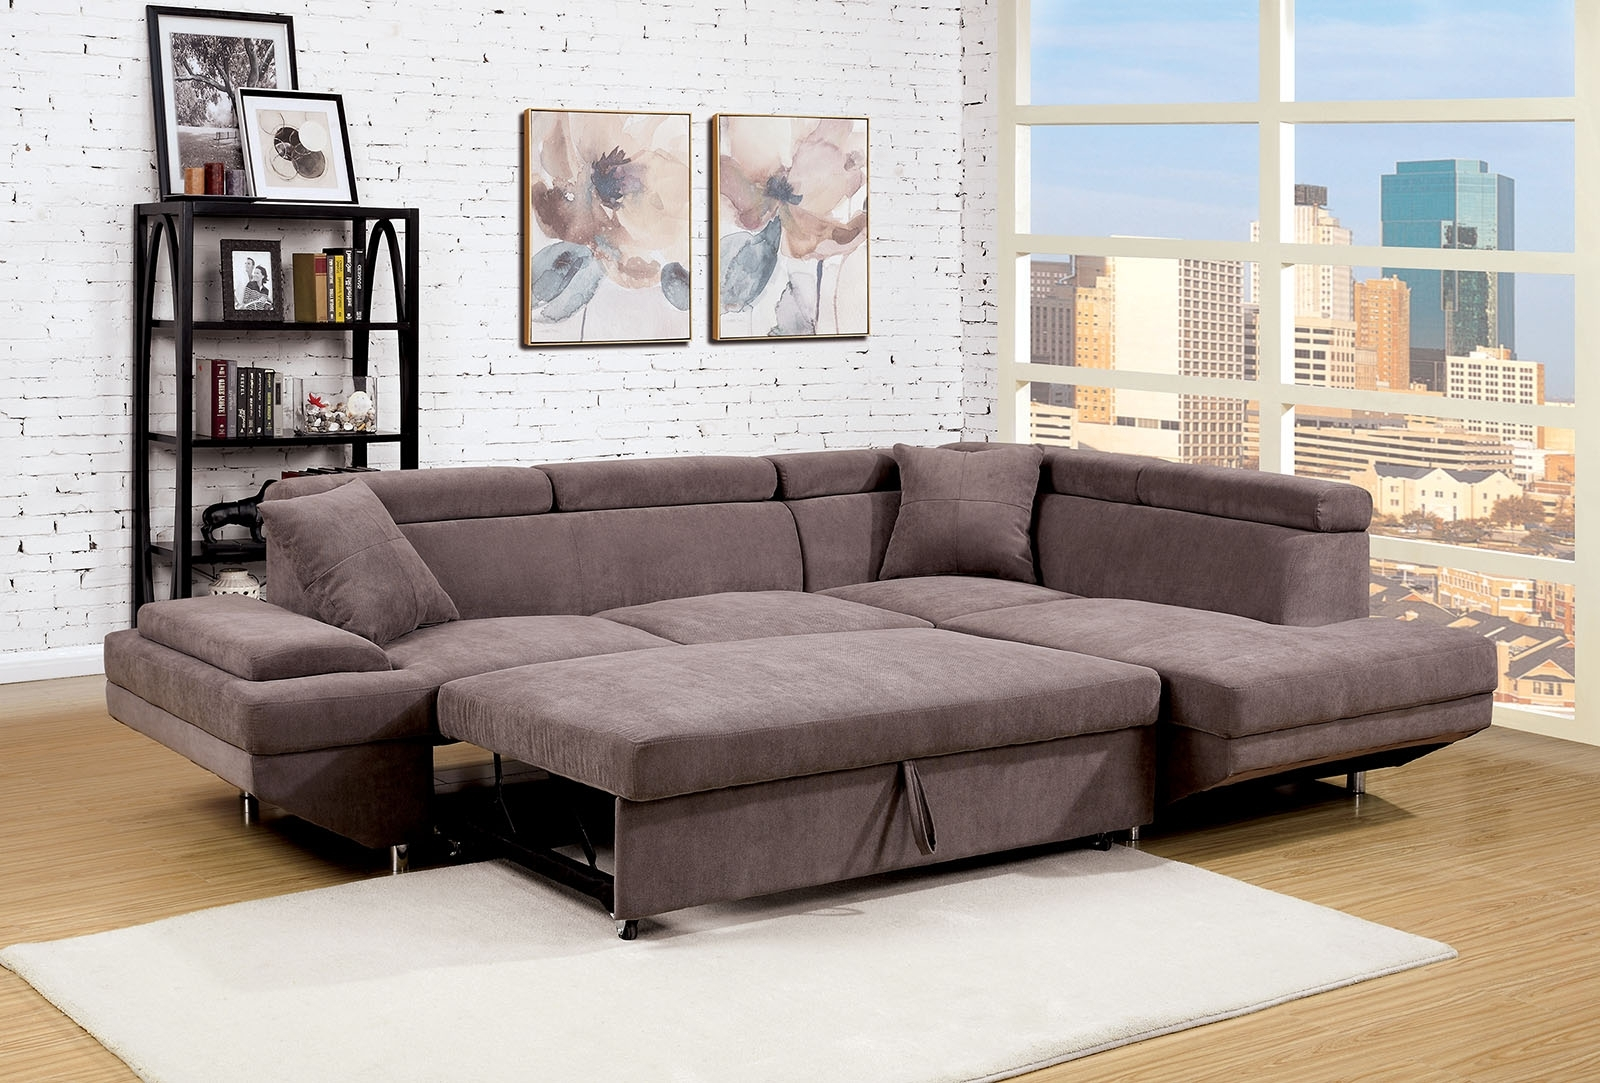 Foreman Contemporary Style Brown Flannelette Fabric Pull Out For Best And Newest Adjustable Sectional Sofas With Queen Bed (View 8 of 15)